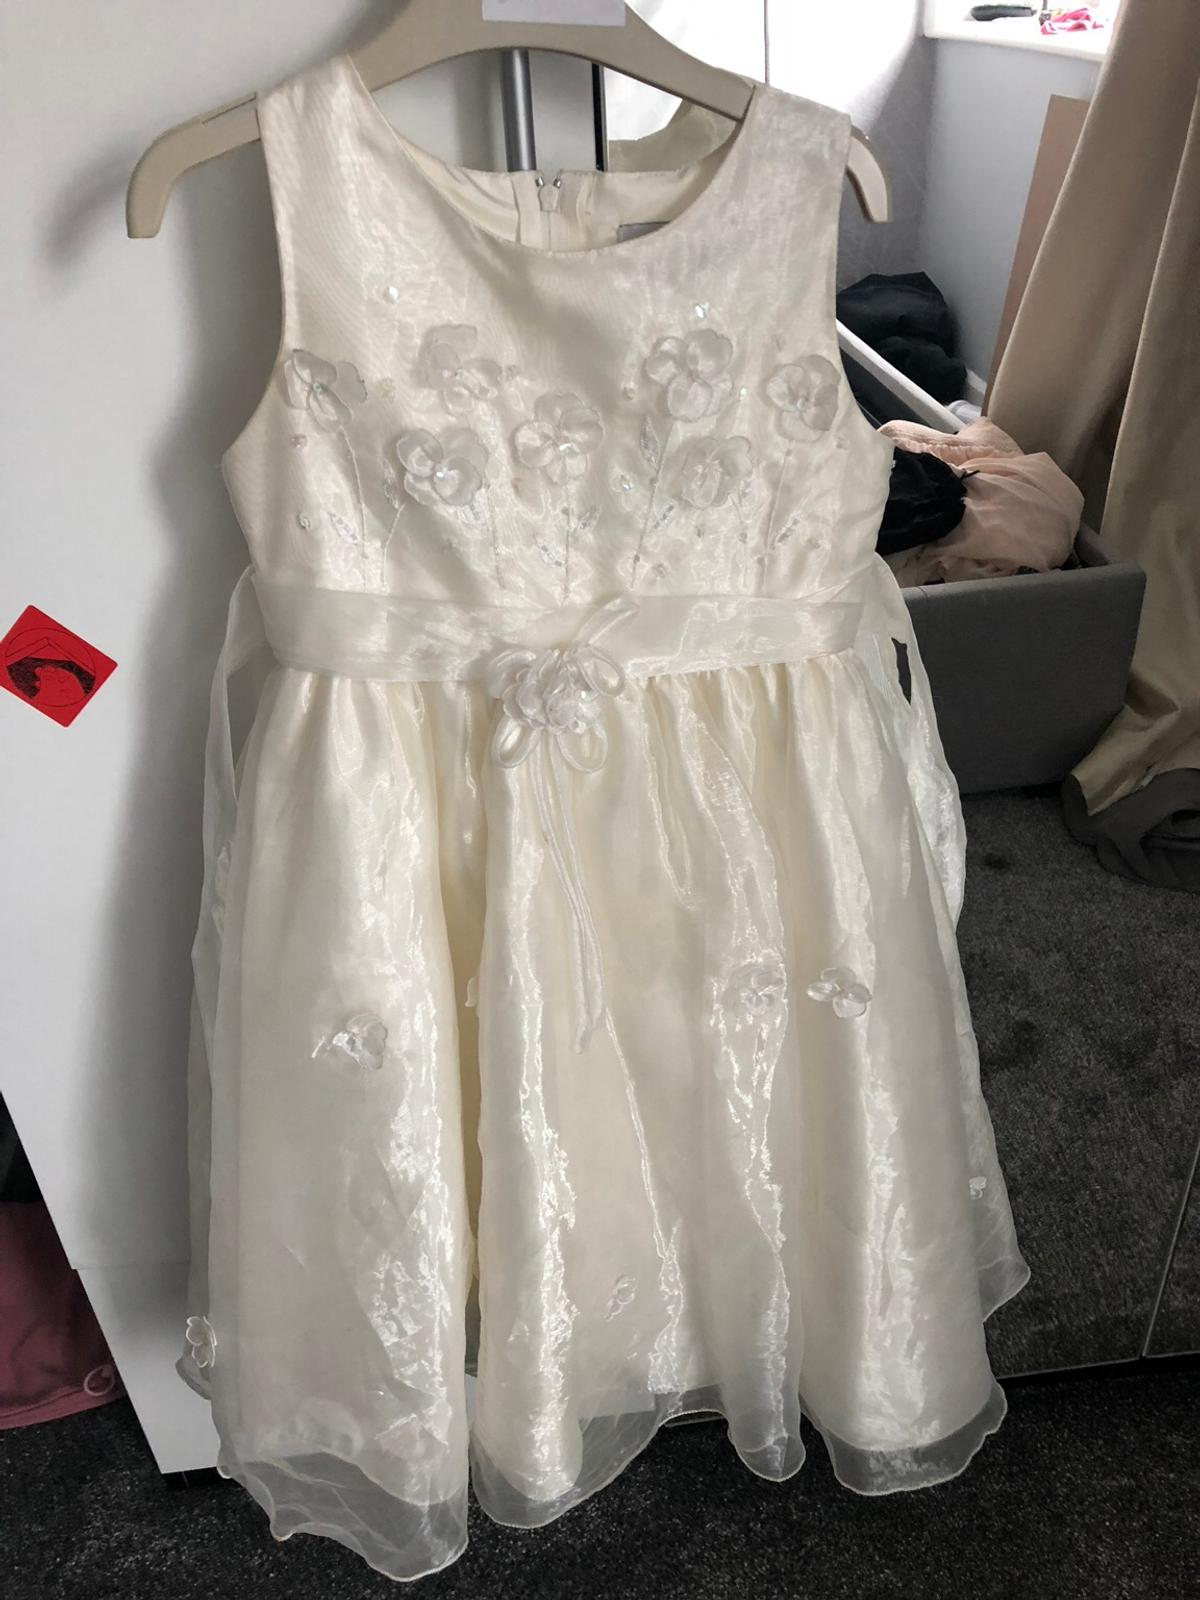 Girls bridesmaid dress aged 6